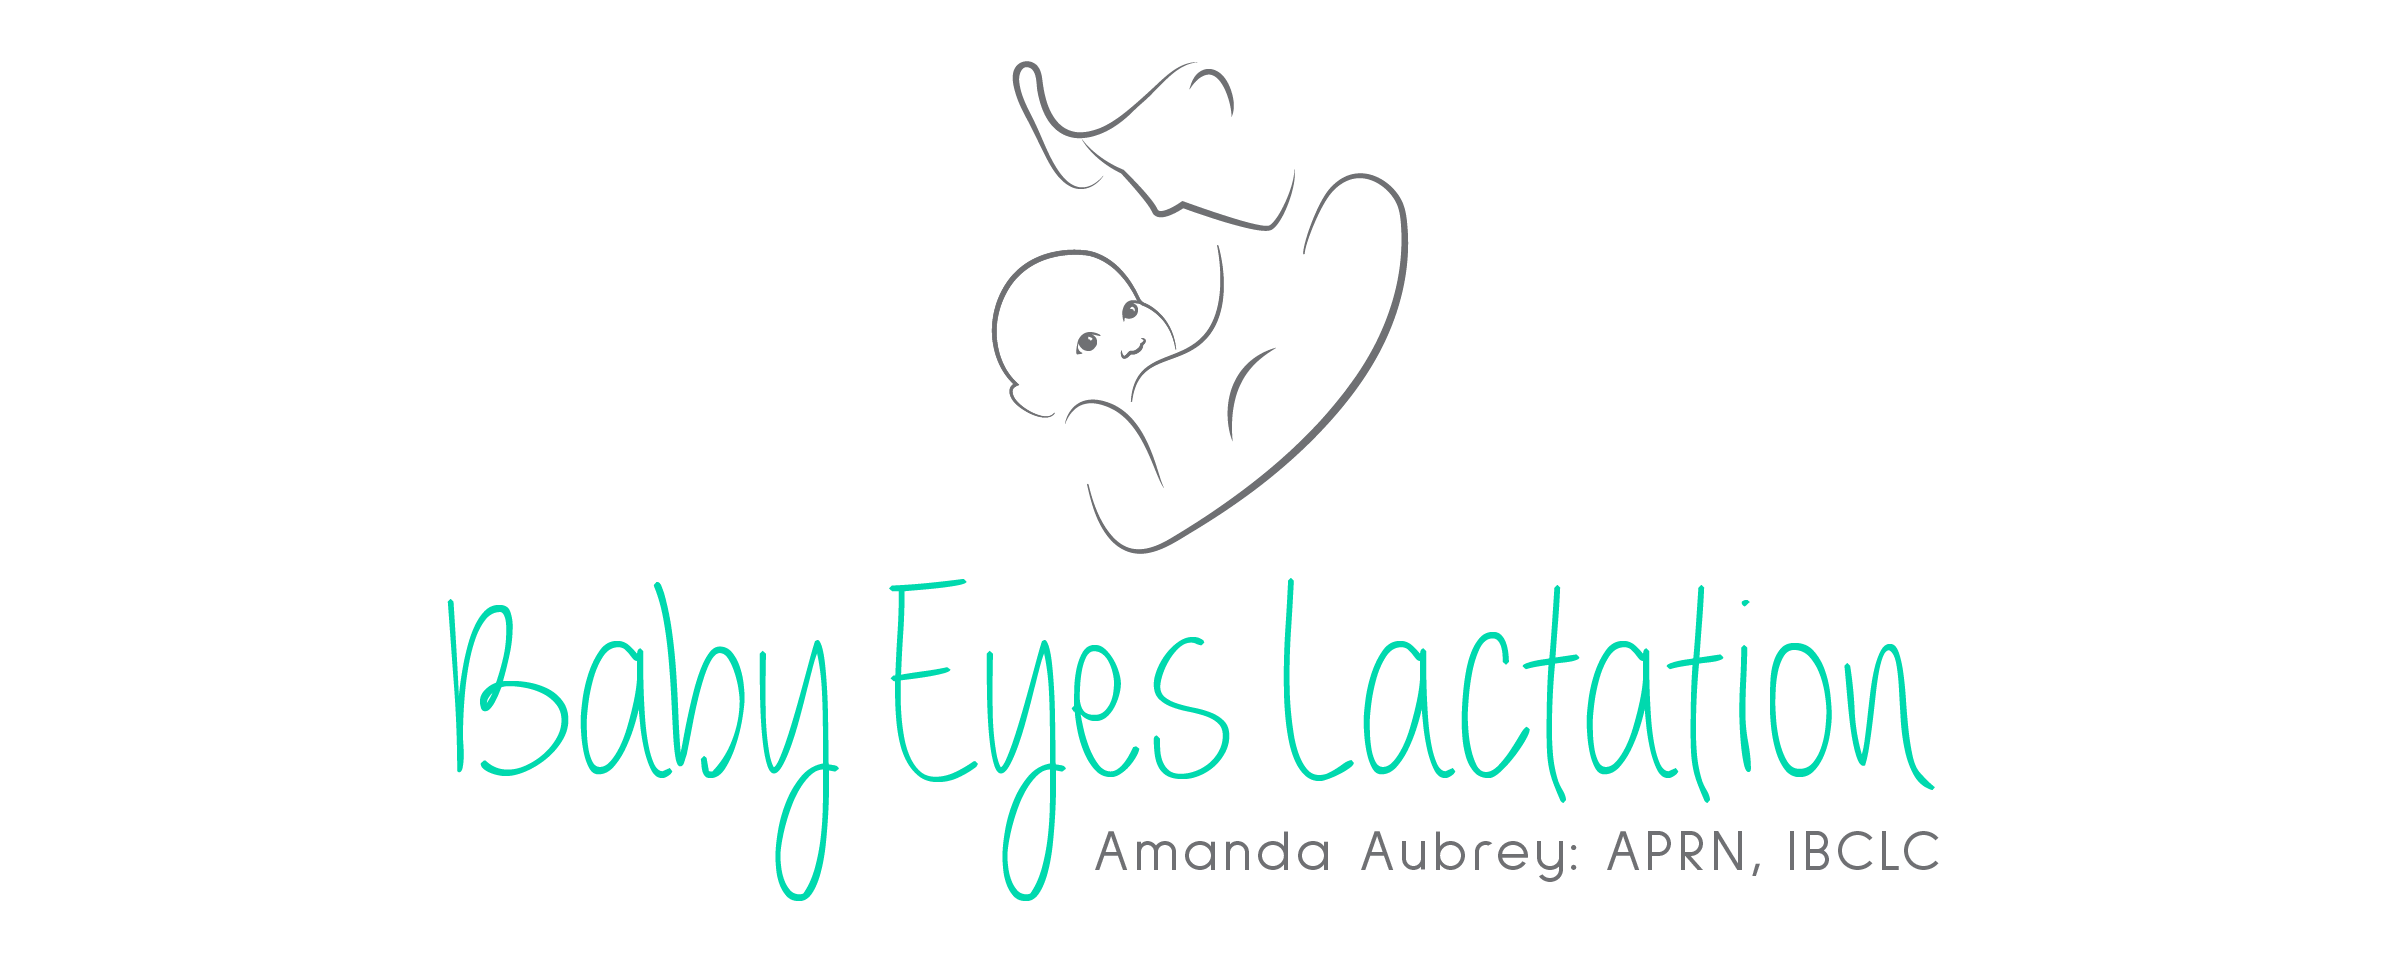 Baby Eyes Lactation, LLC